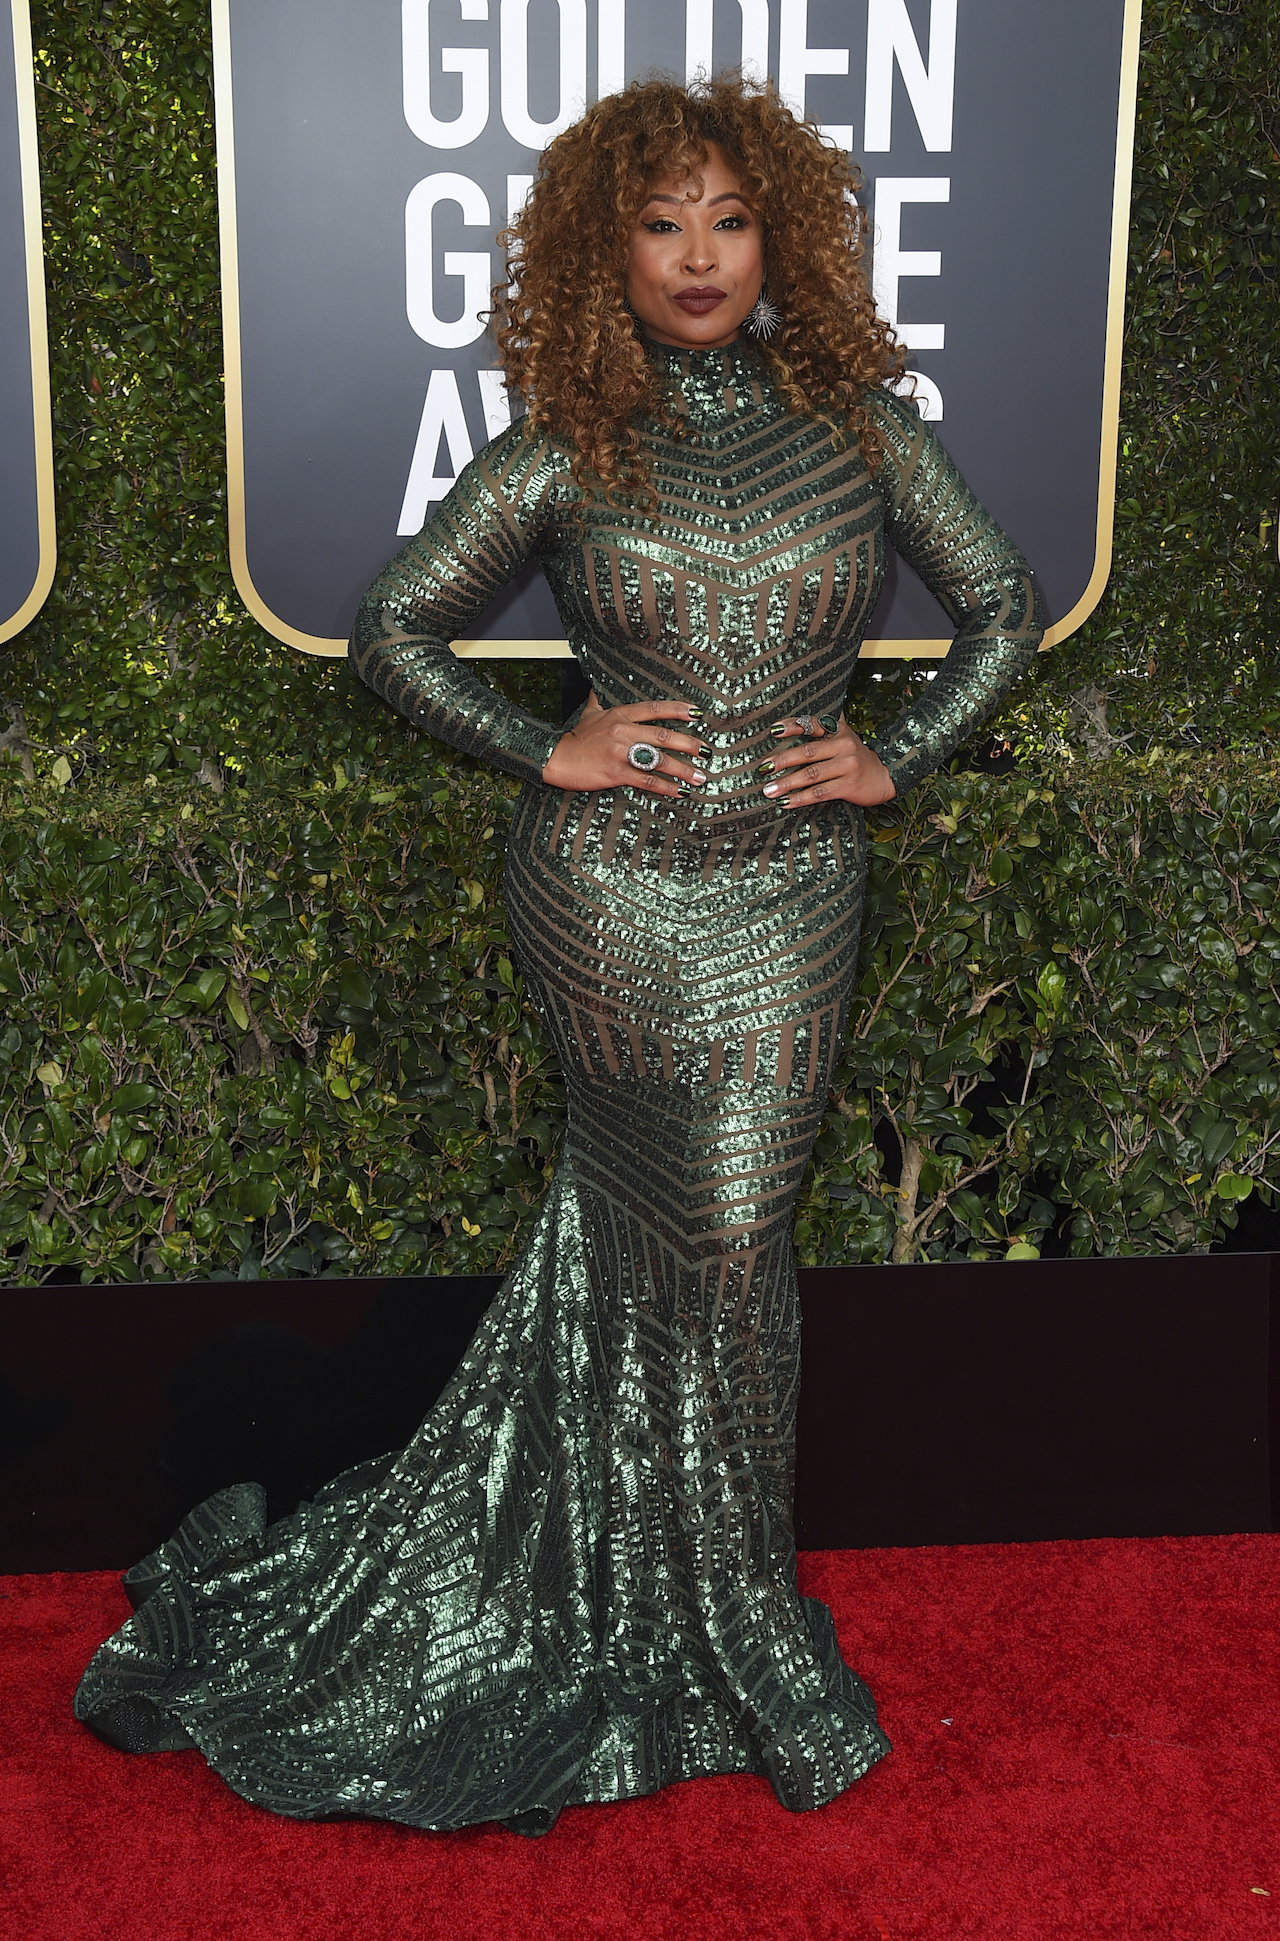 <div class='meta'><div class='origin-logo' data-origin='AP'></div><span class='caption-text' data-credit='Jordan Strauss/Invision/AP'>Tanika Ray arrives at the 76th annual Golden Globe Awards at the Beverly Hilton Hotel on Sunday, Jan. 6, 2019, in Beverly Hills, Calif.</span></div>